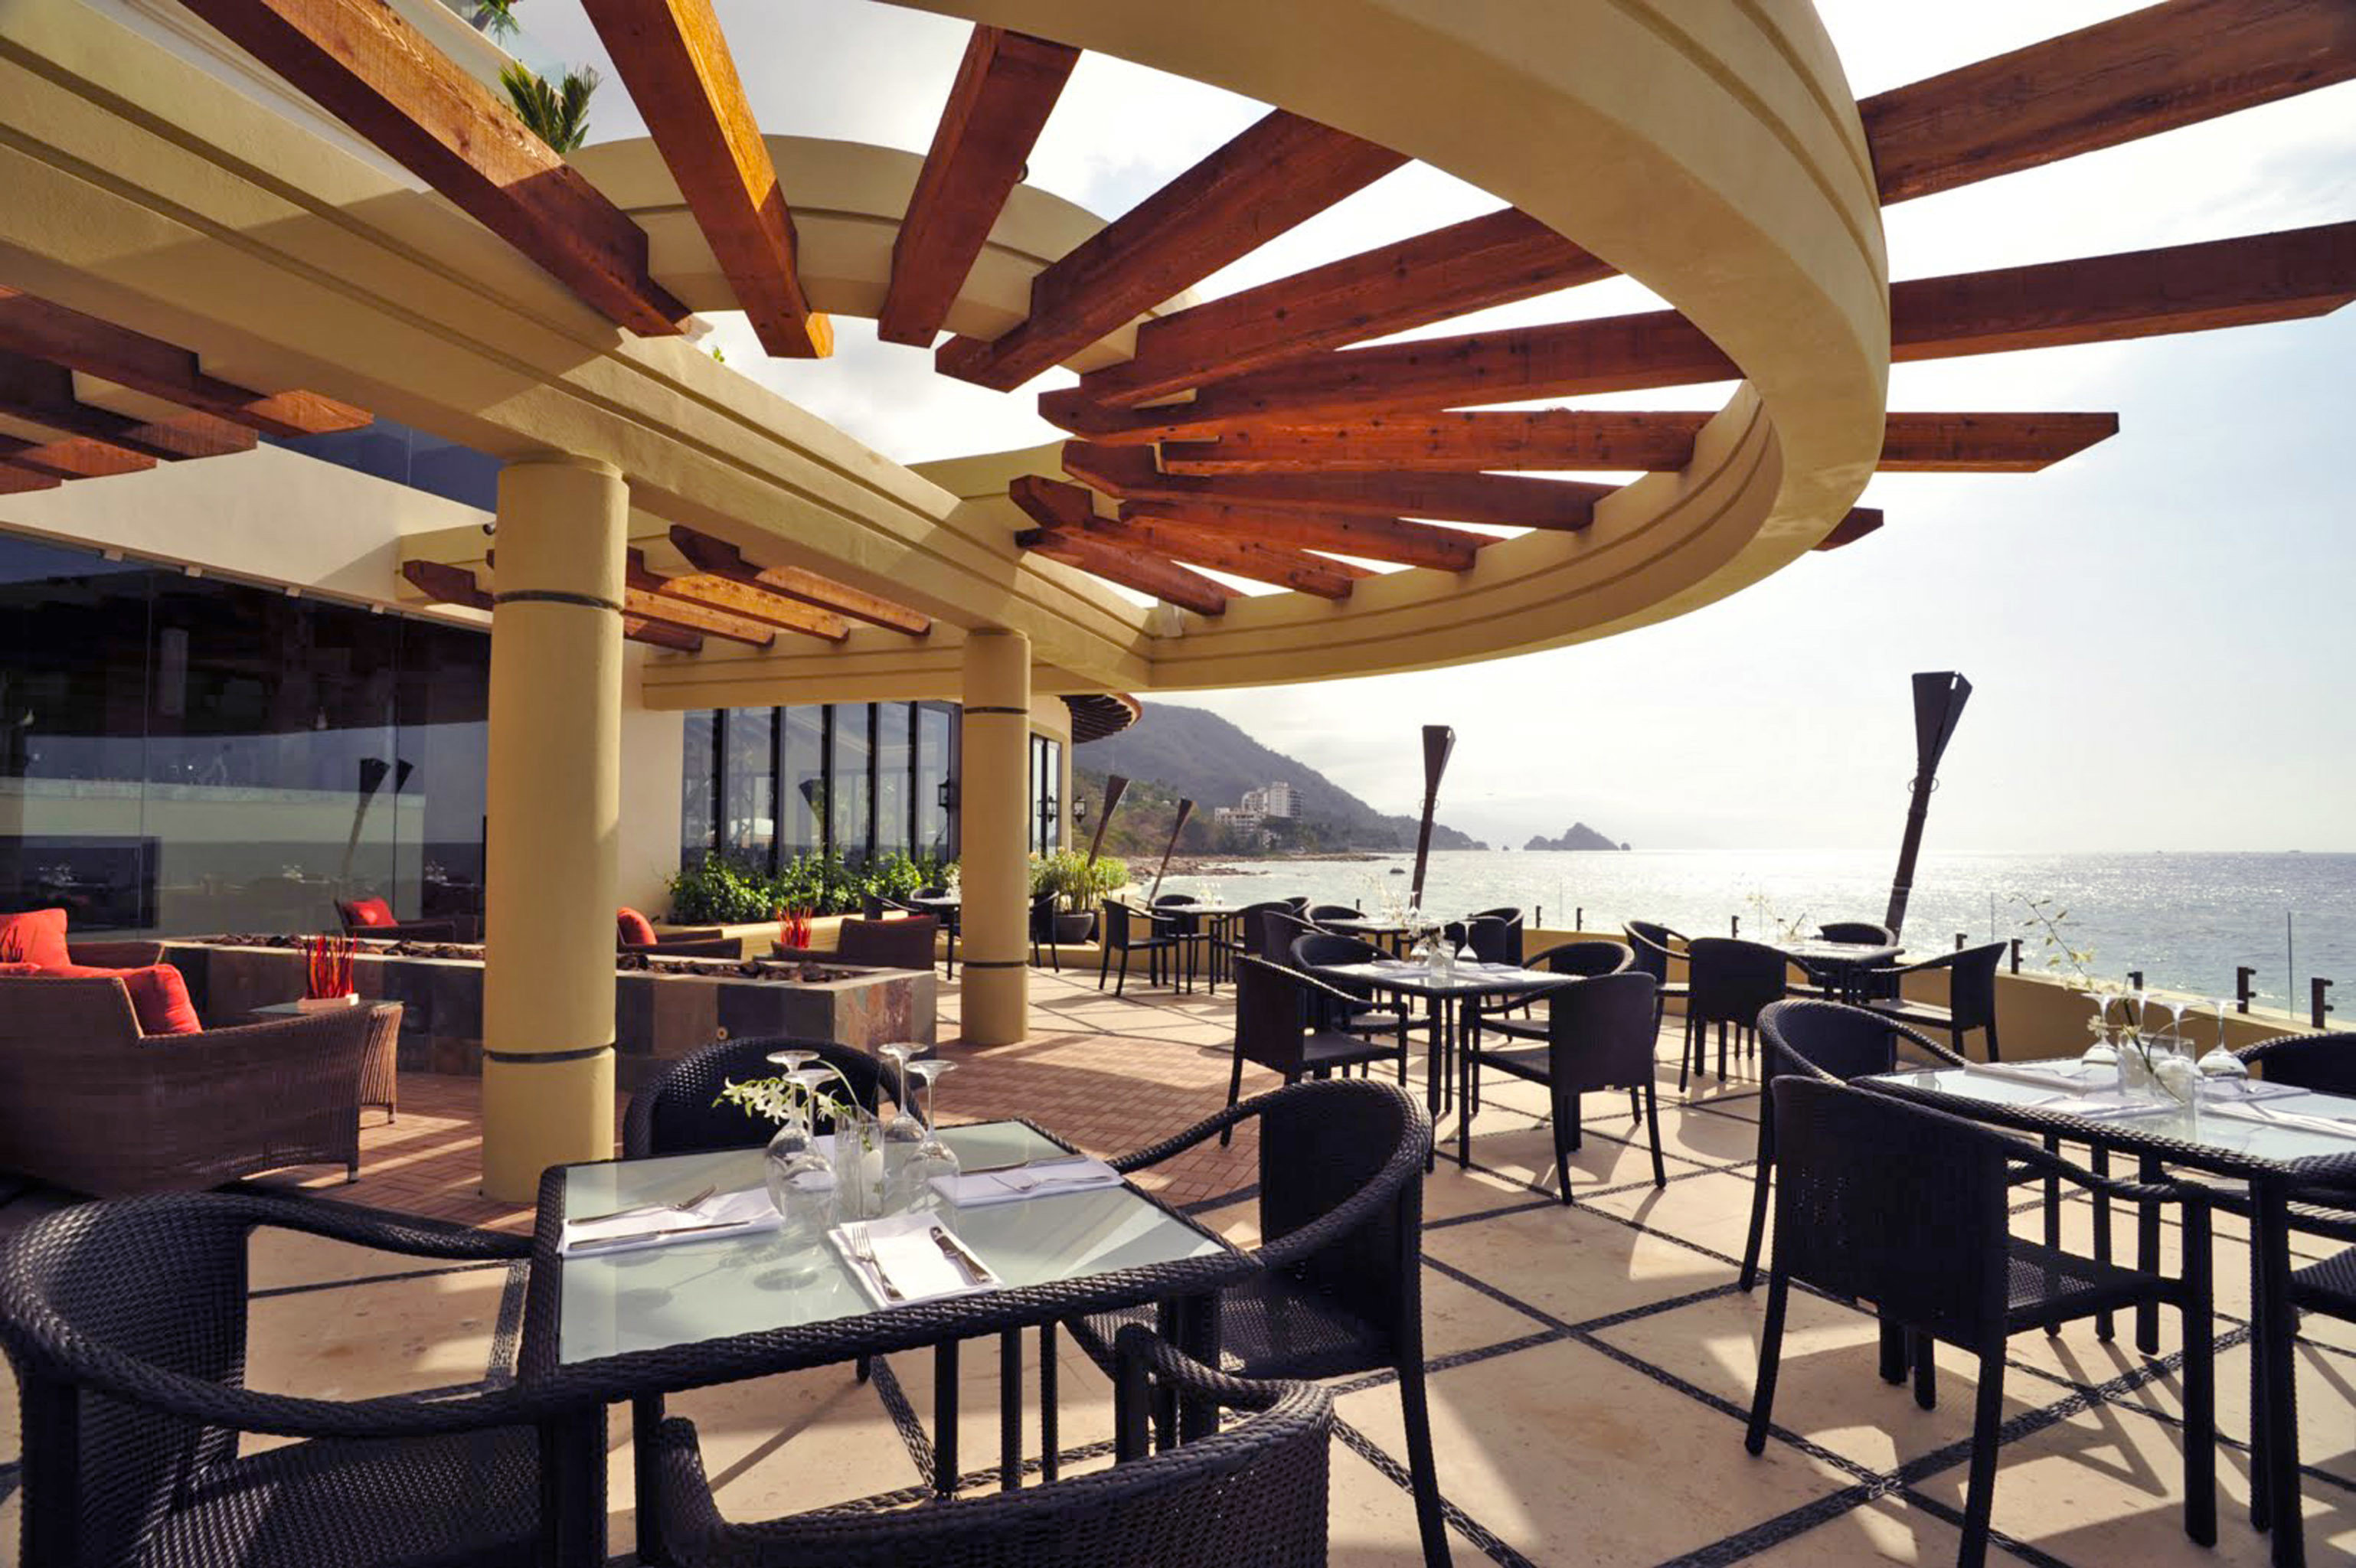 chair property restaurant outdoor structure Dining Resort pergola